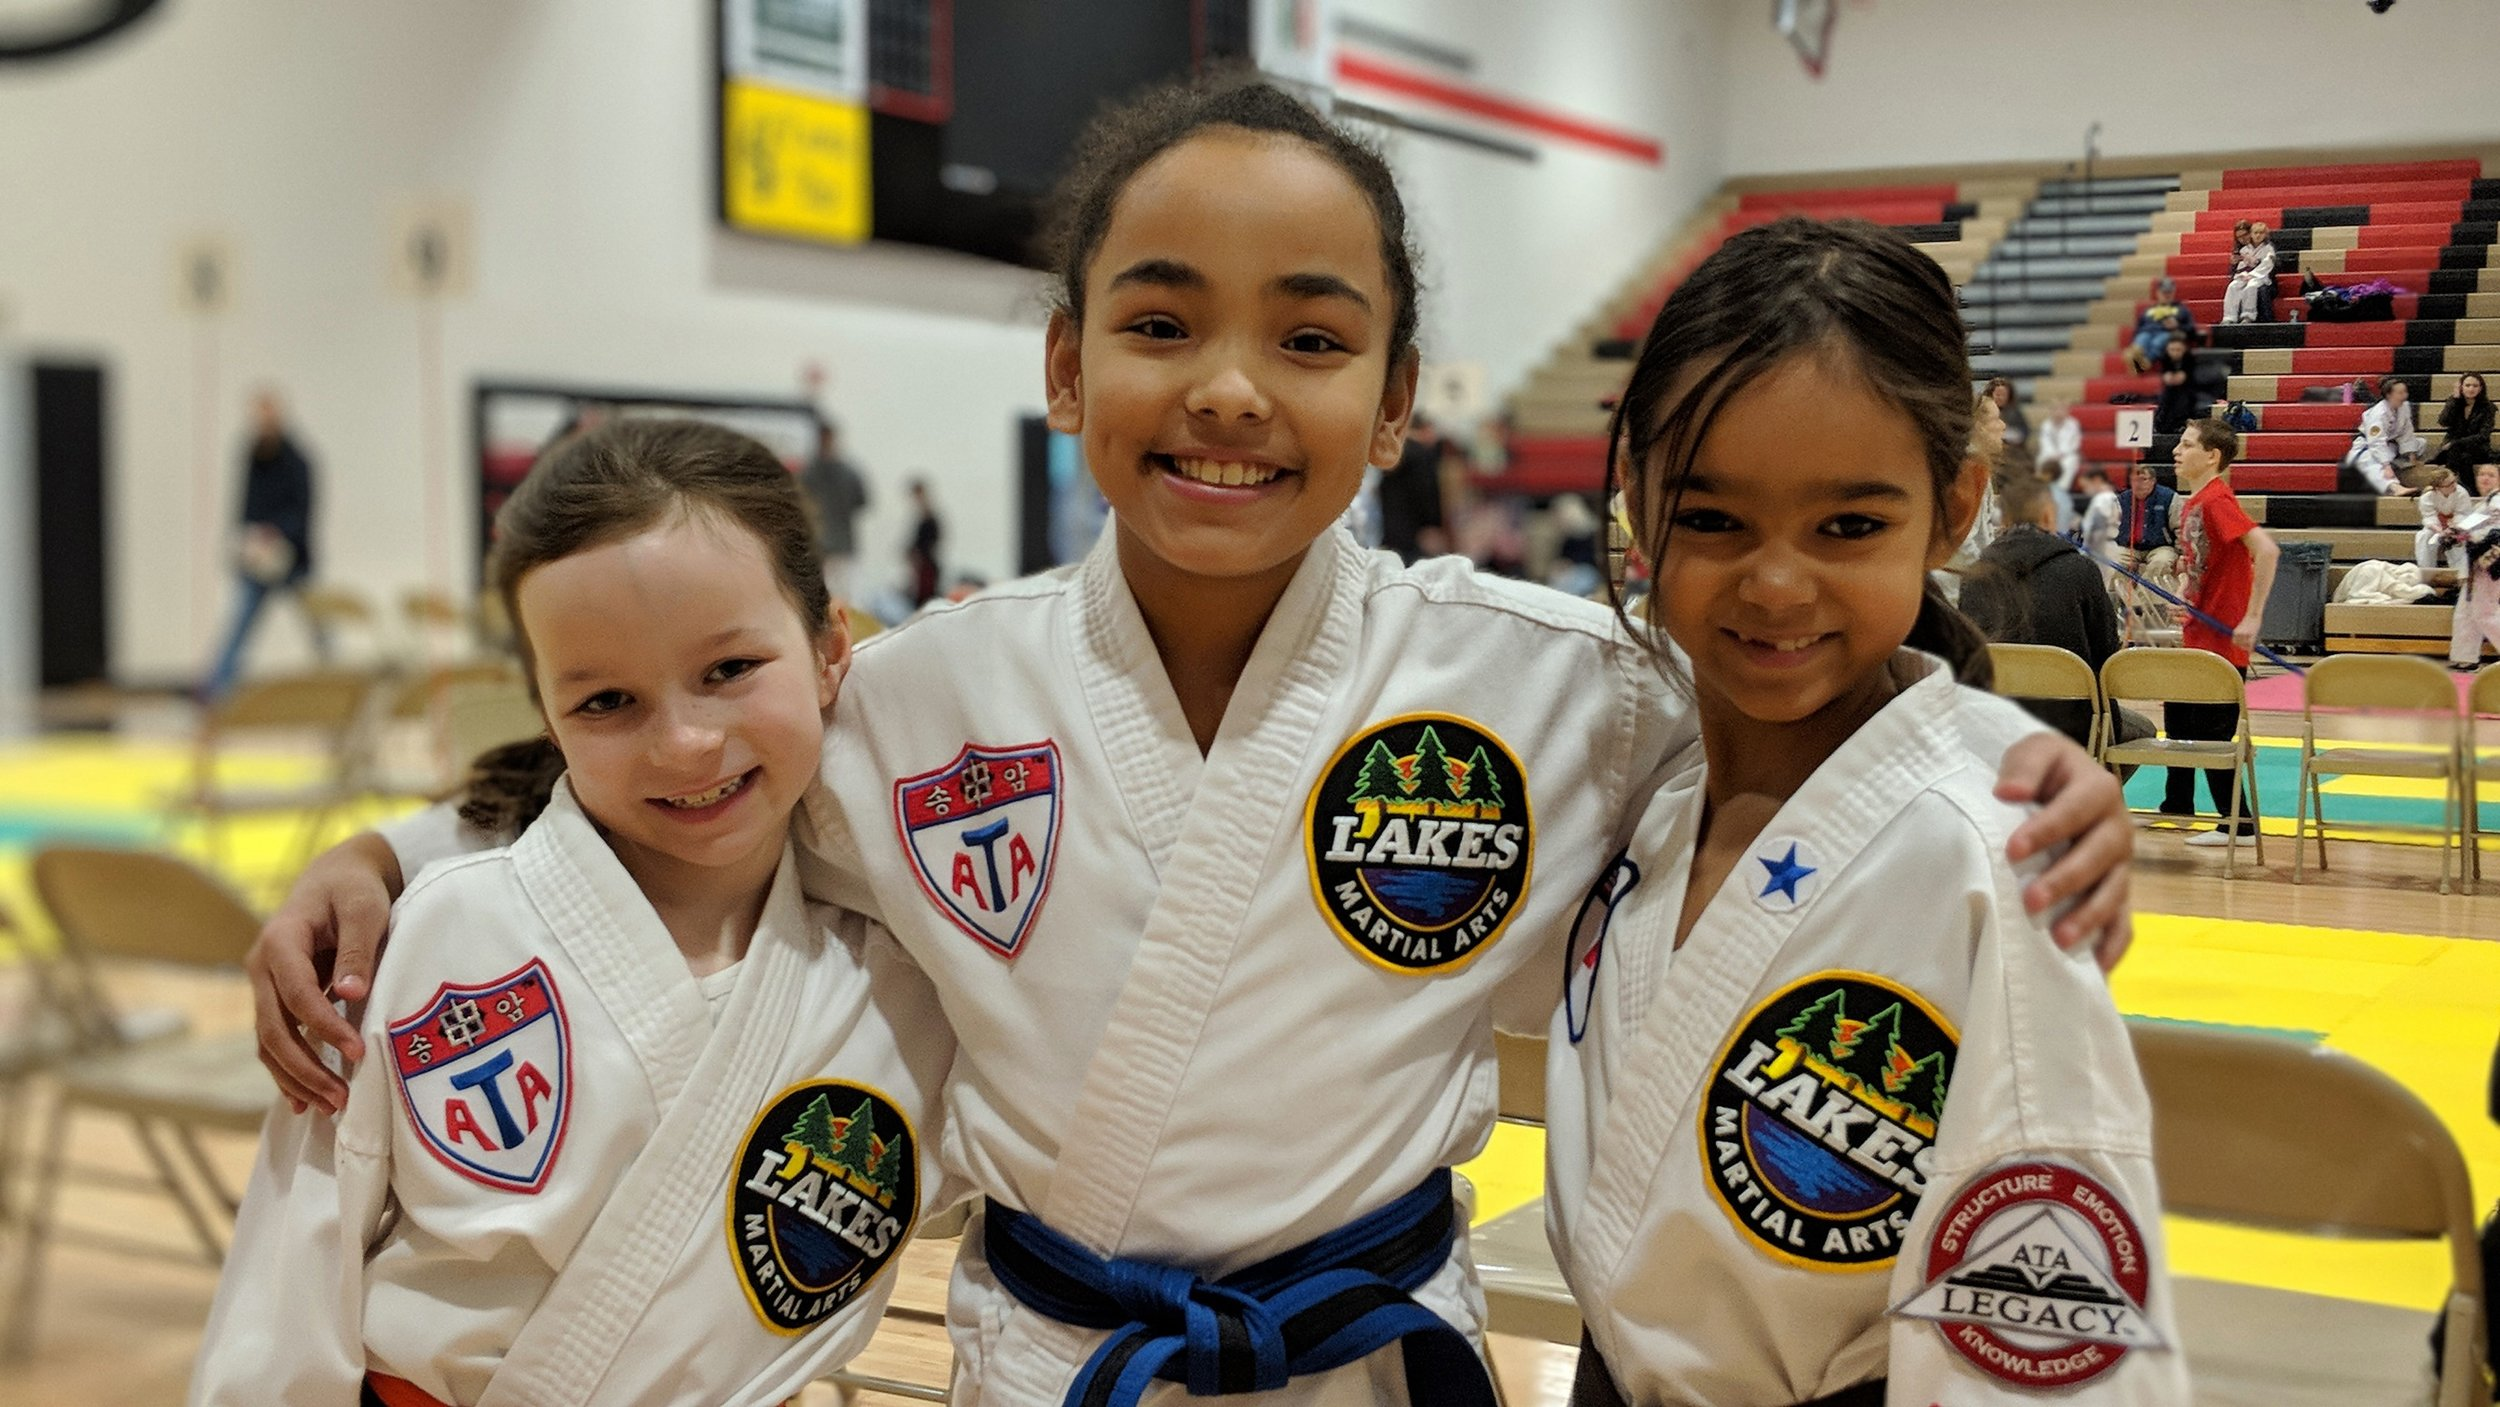 2018-twin-cities-tourney-lakes-martial-arts-006.JPG